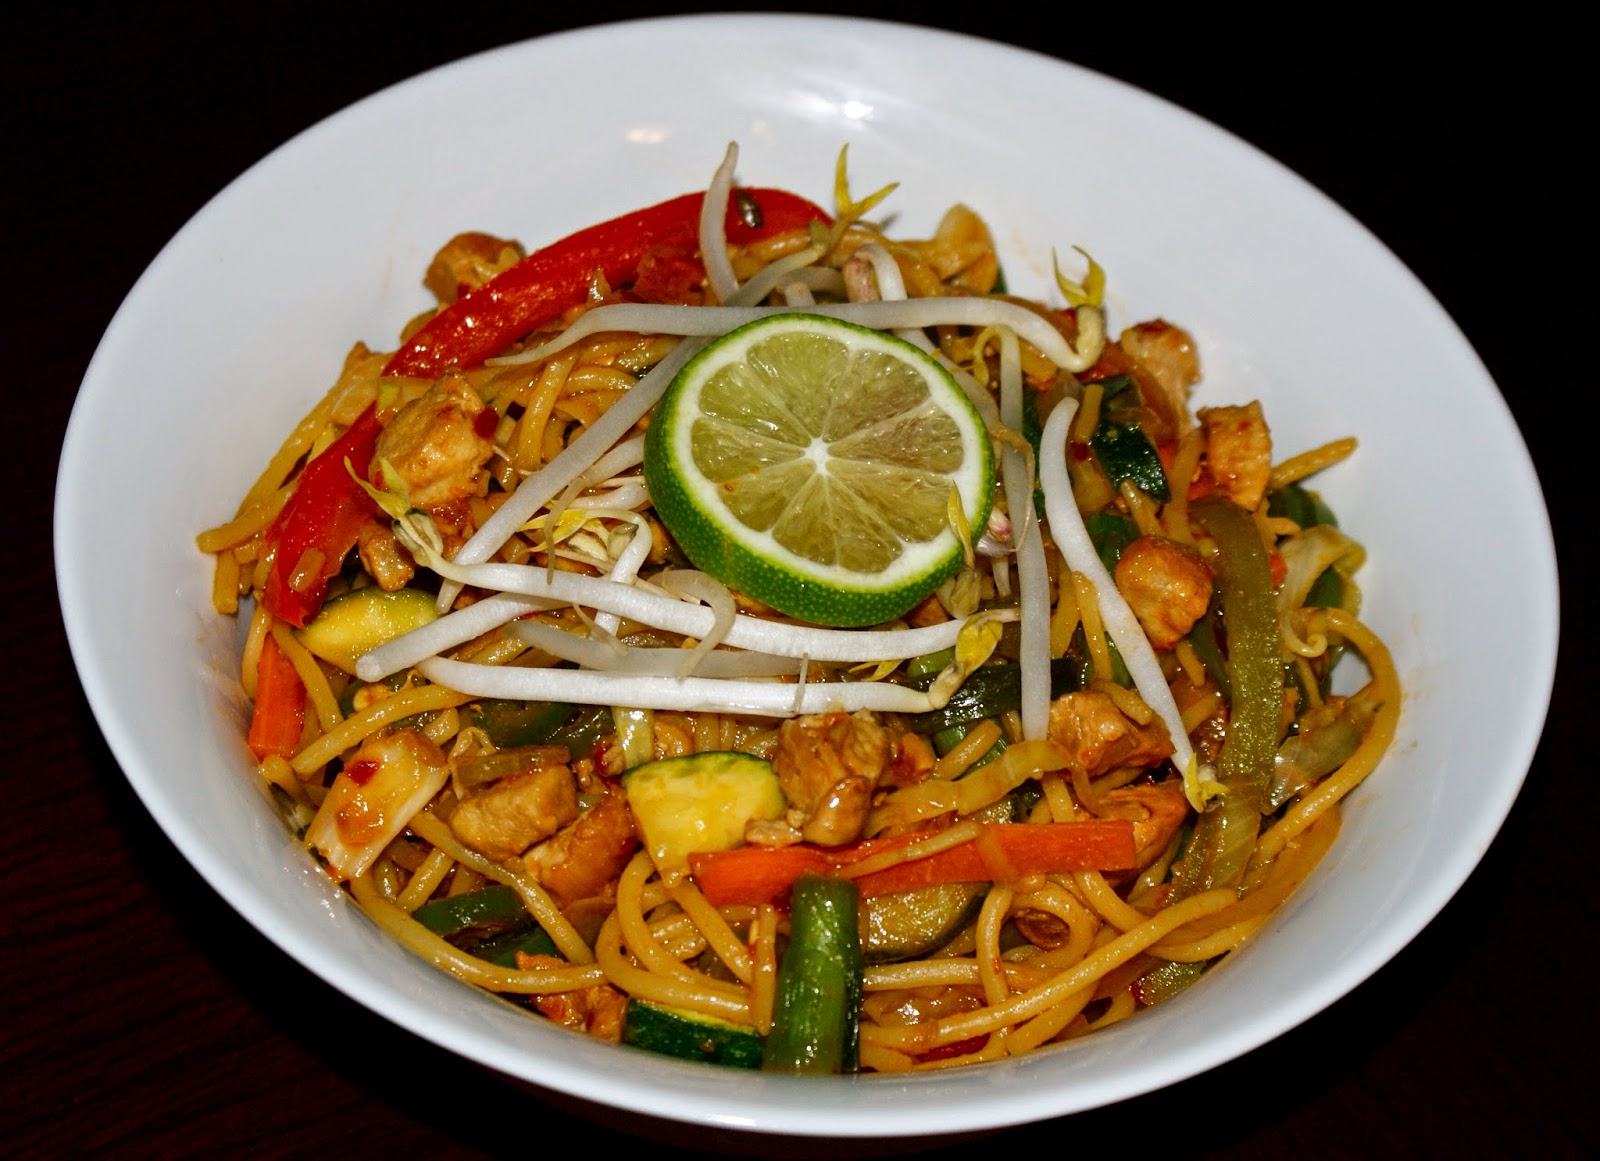 Nepali tummy chicken chow mein recipe i think it was because we get it every where and is often prepared at households whatever lets get to the point and start cooking forumfinder Image collections